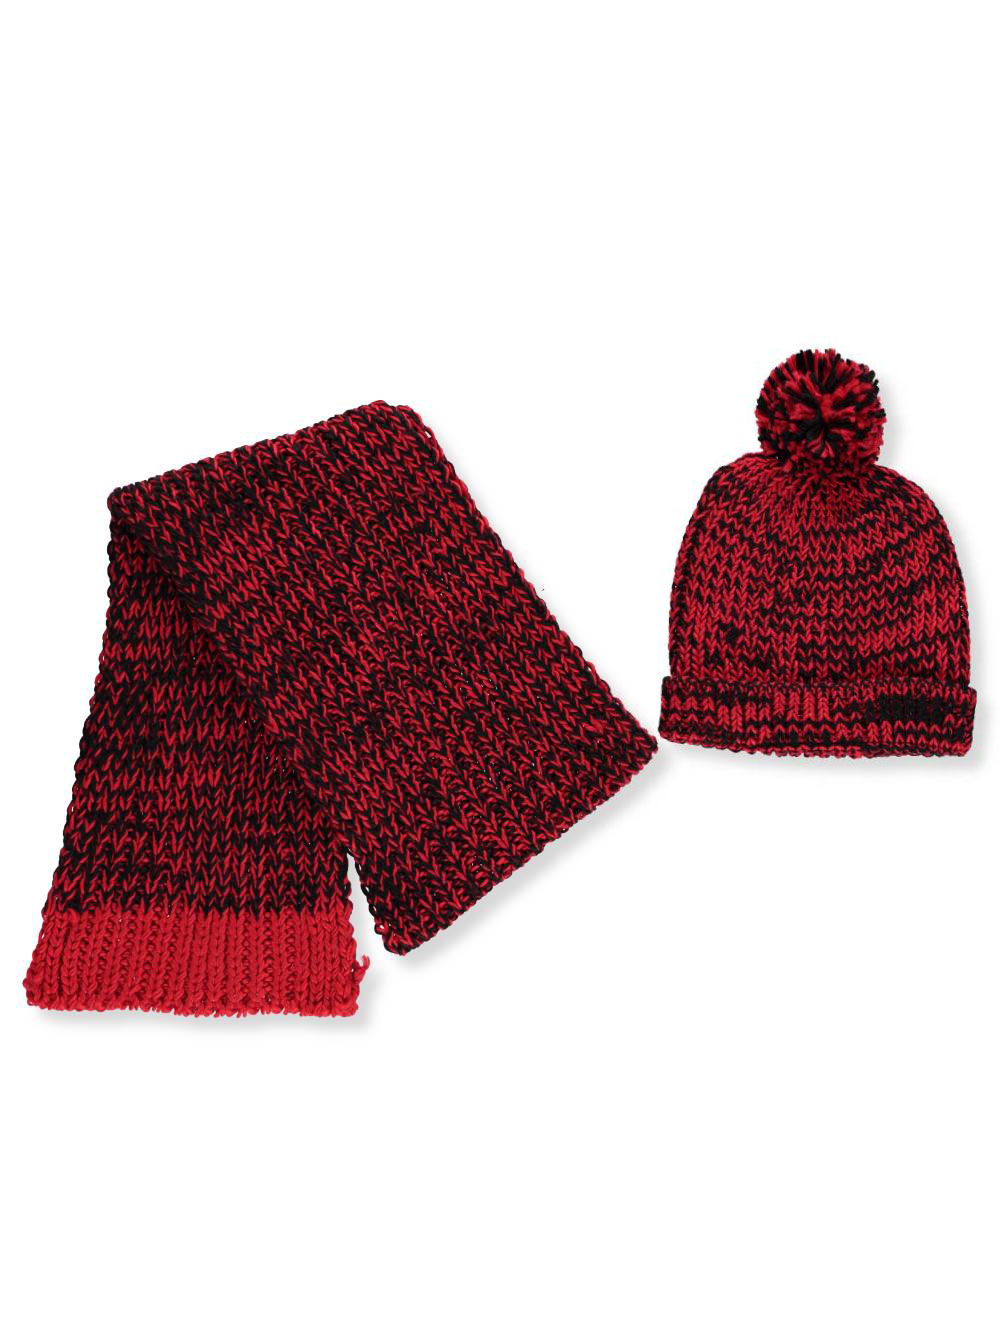 ae5bc6b41 Girls' Beanie & Scarf Set by Alexa Rose in Red/multi